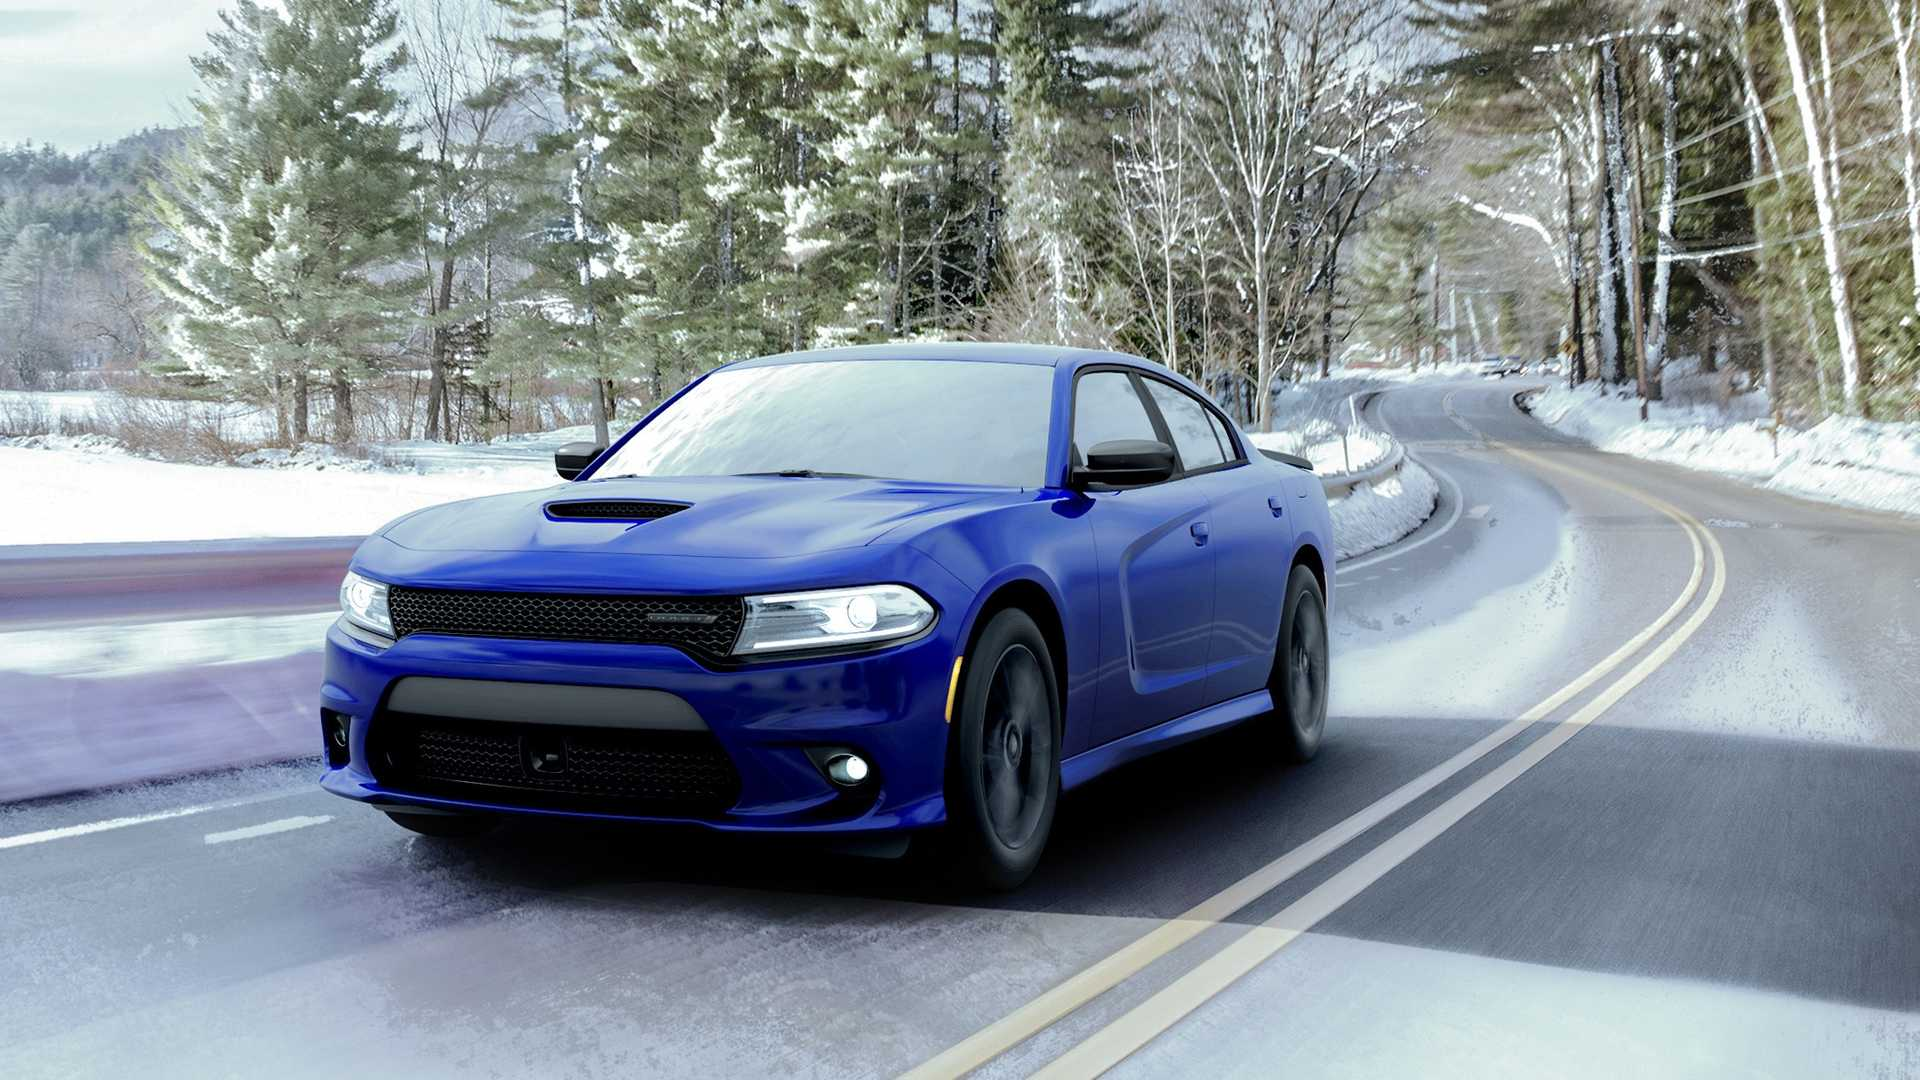 2020 Dodge Charger GT AWD Proves An Old Dog Can Learn New Tricks